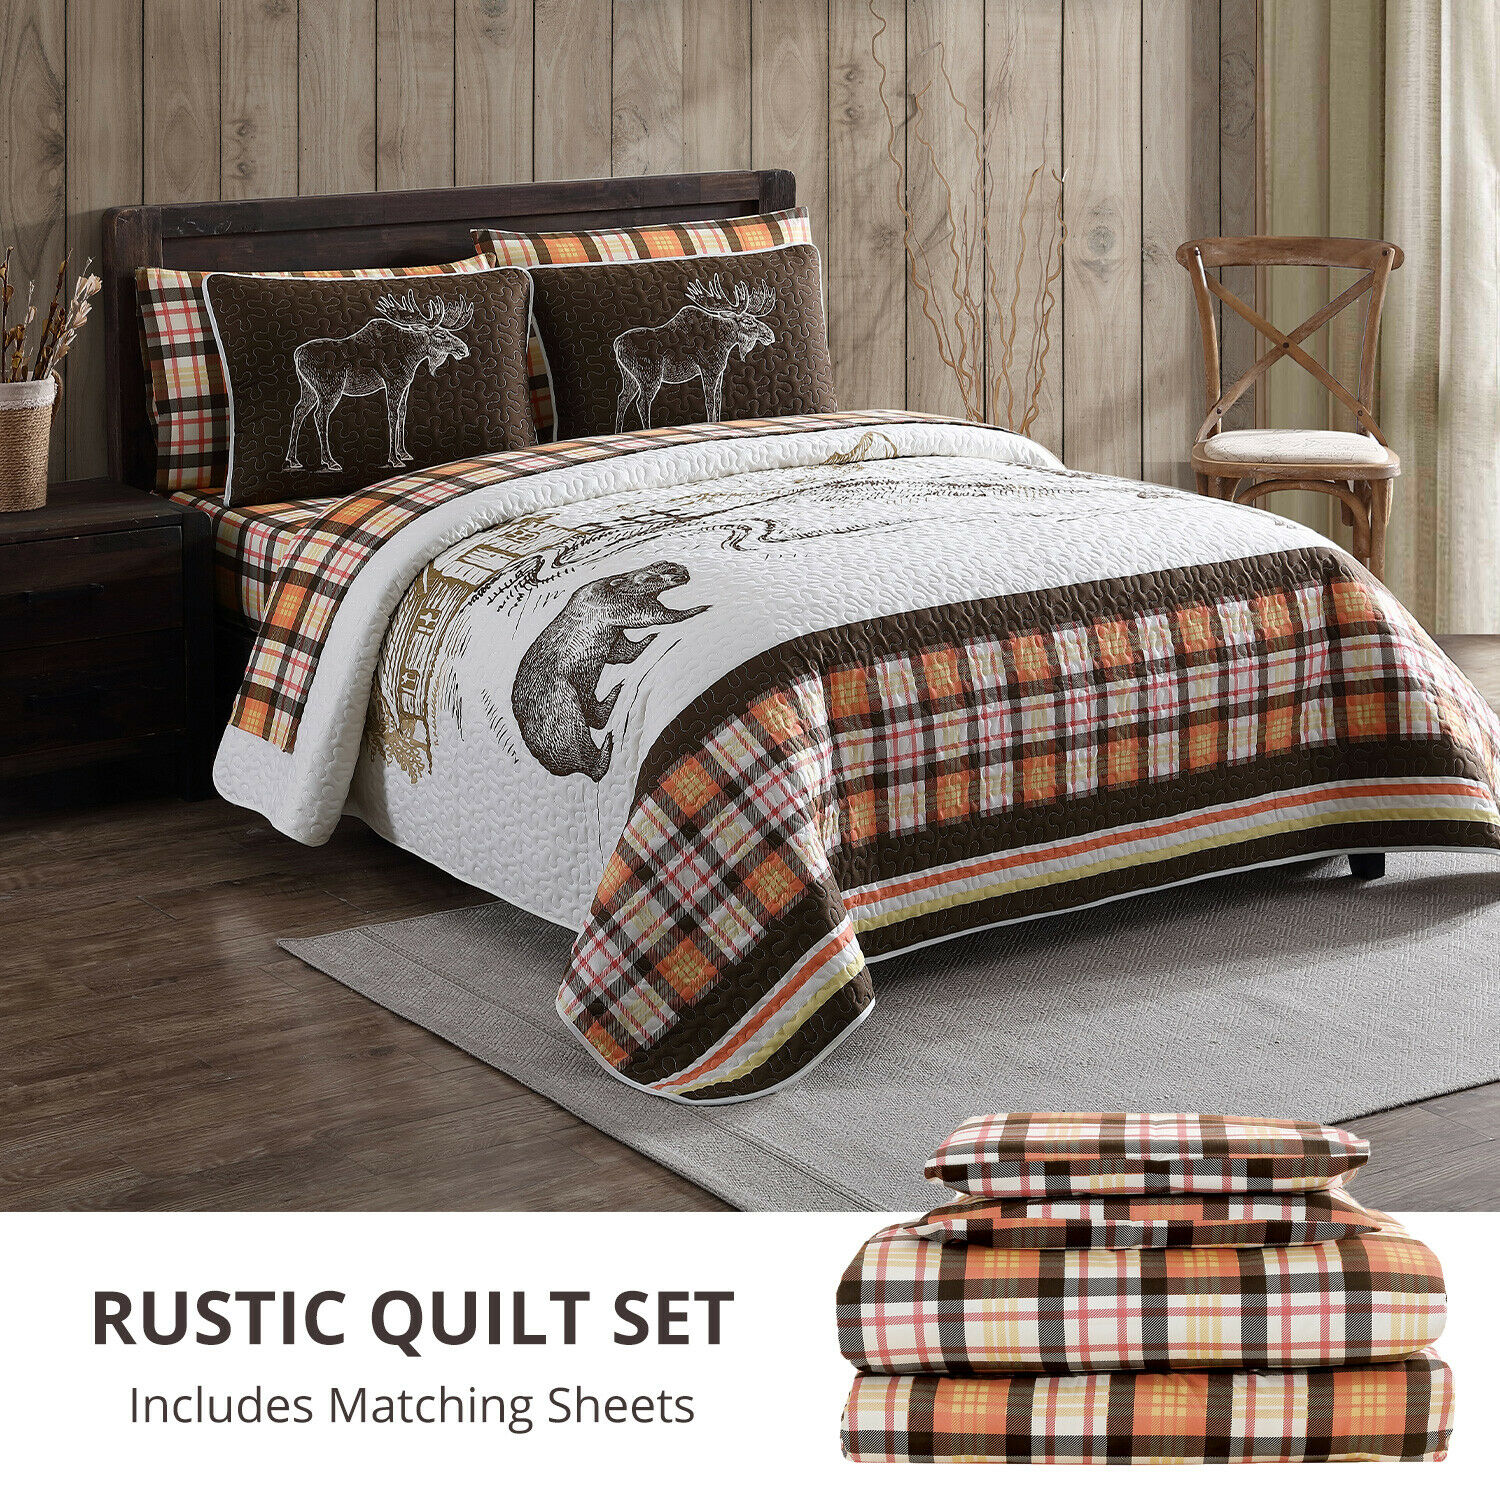 Twin, Full, Queen or King Rustic Mountain Quilt Bed in a Bag Set Bedding